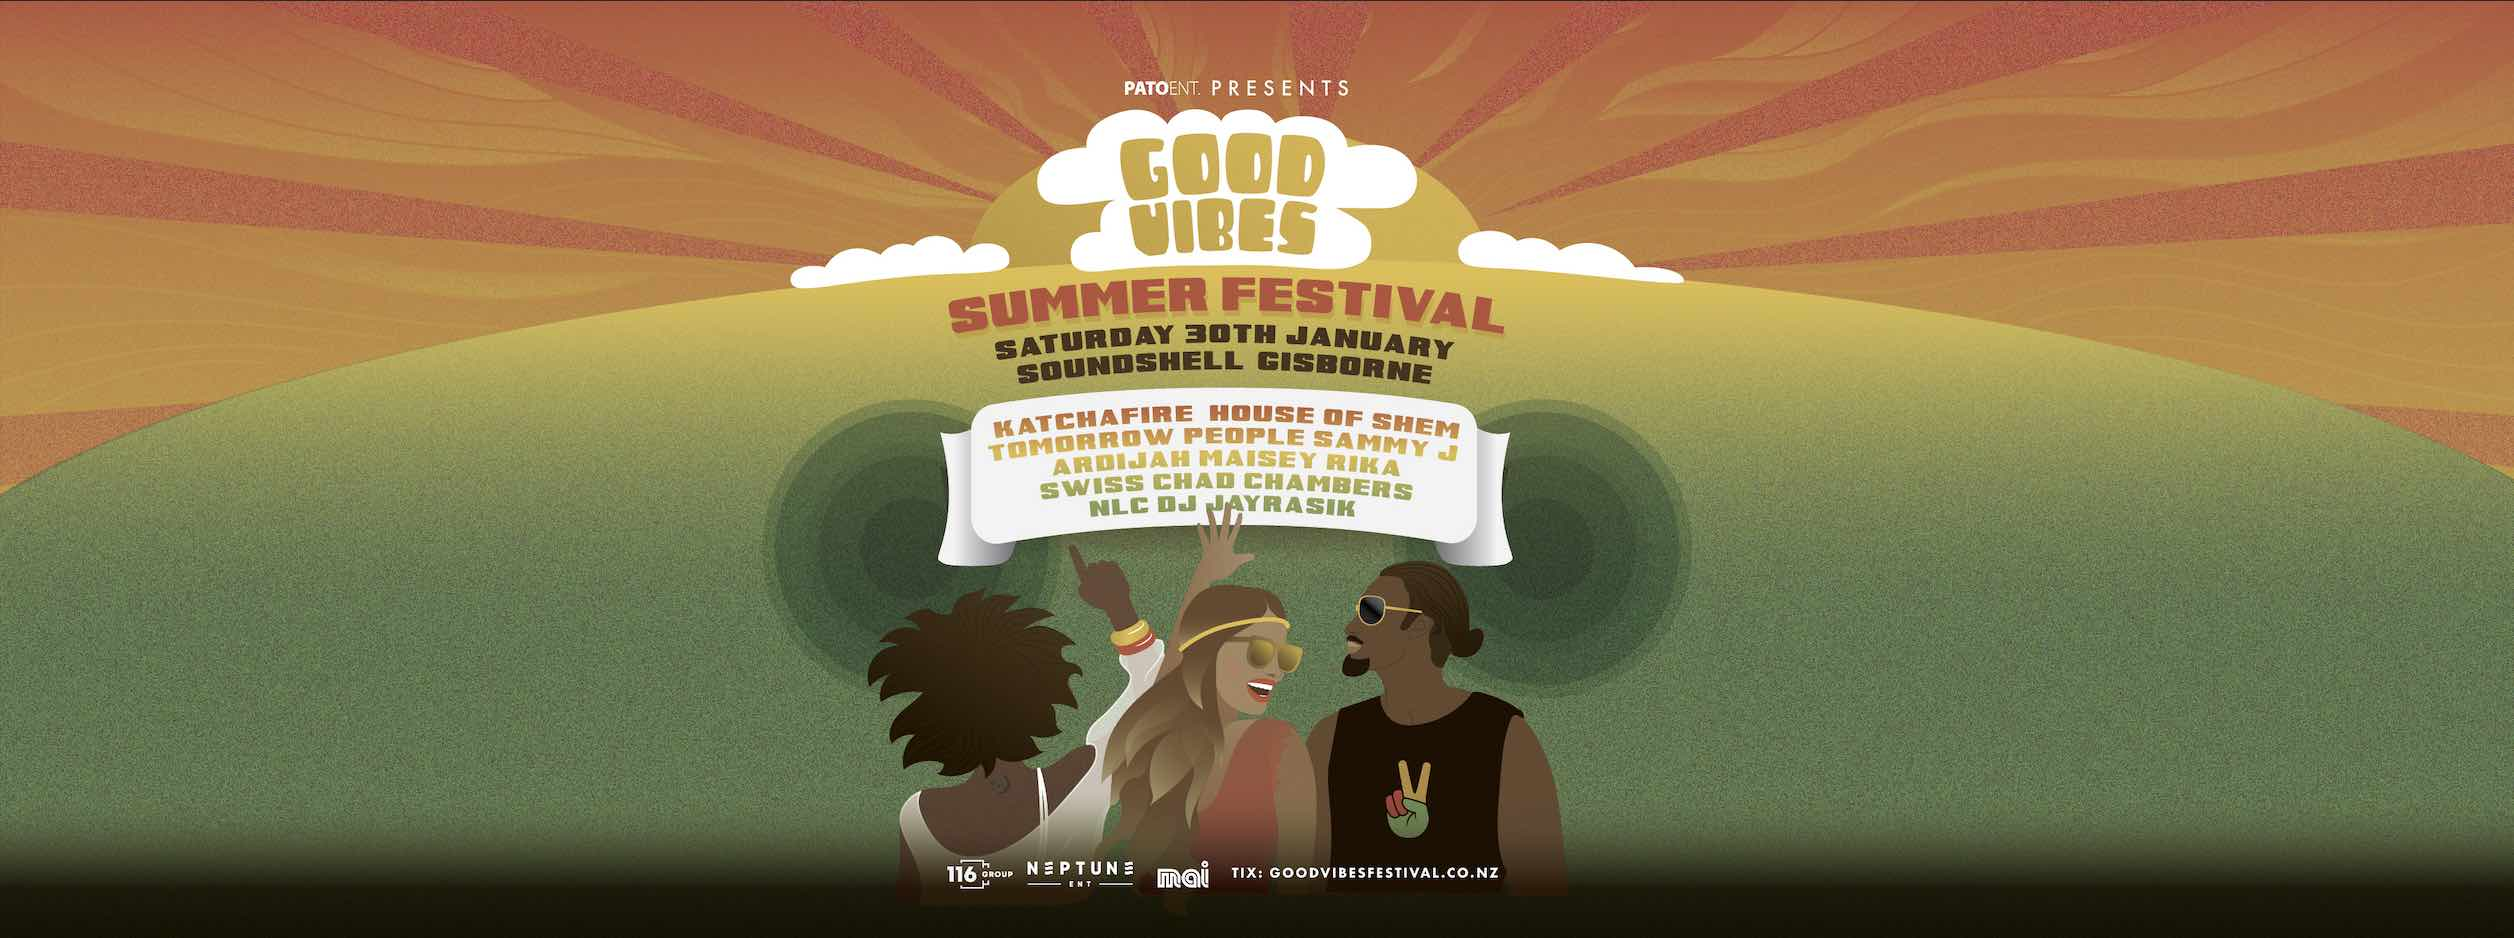 Tickets for Good Vibes Summer Festival | Gisborne in Gisborne from Ticketspace